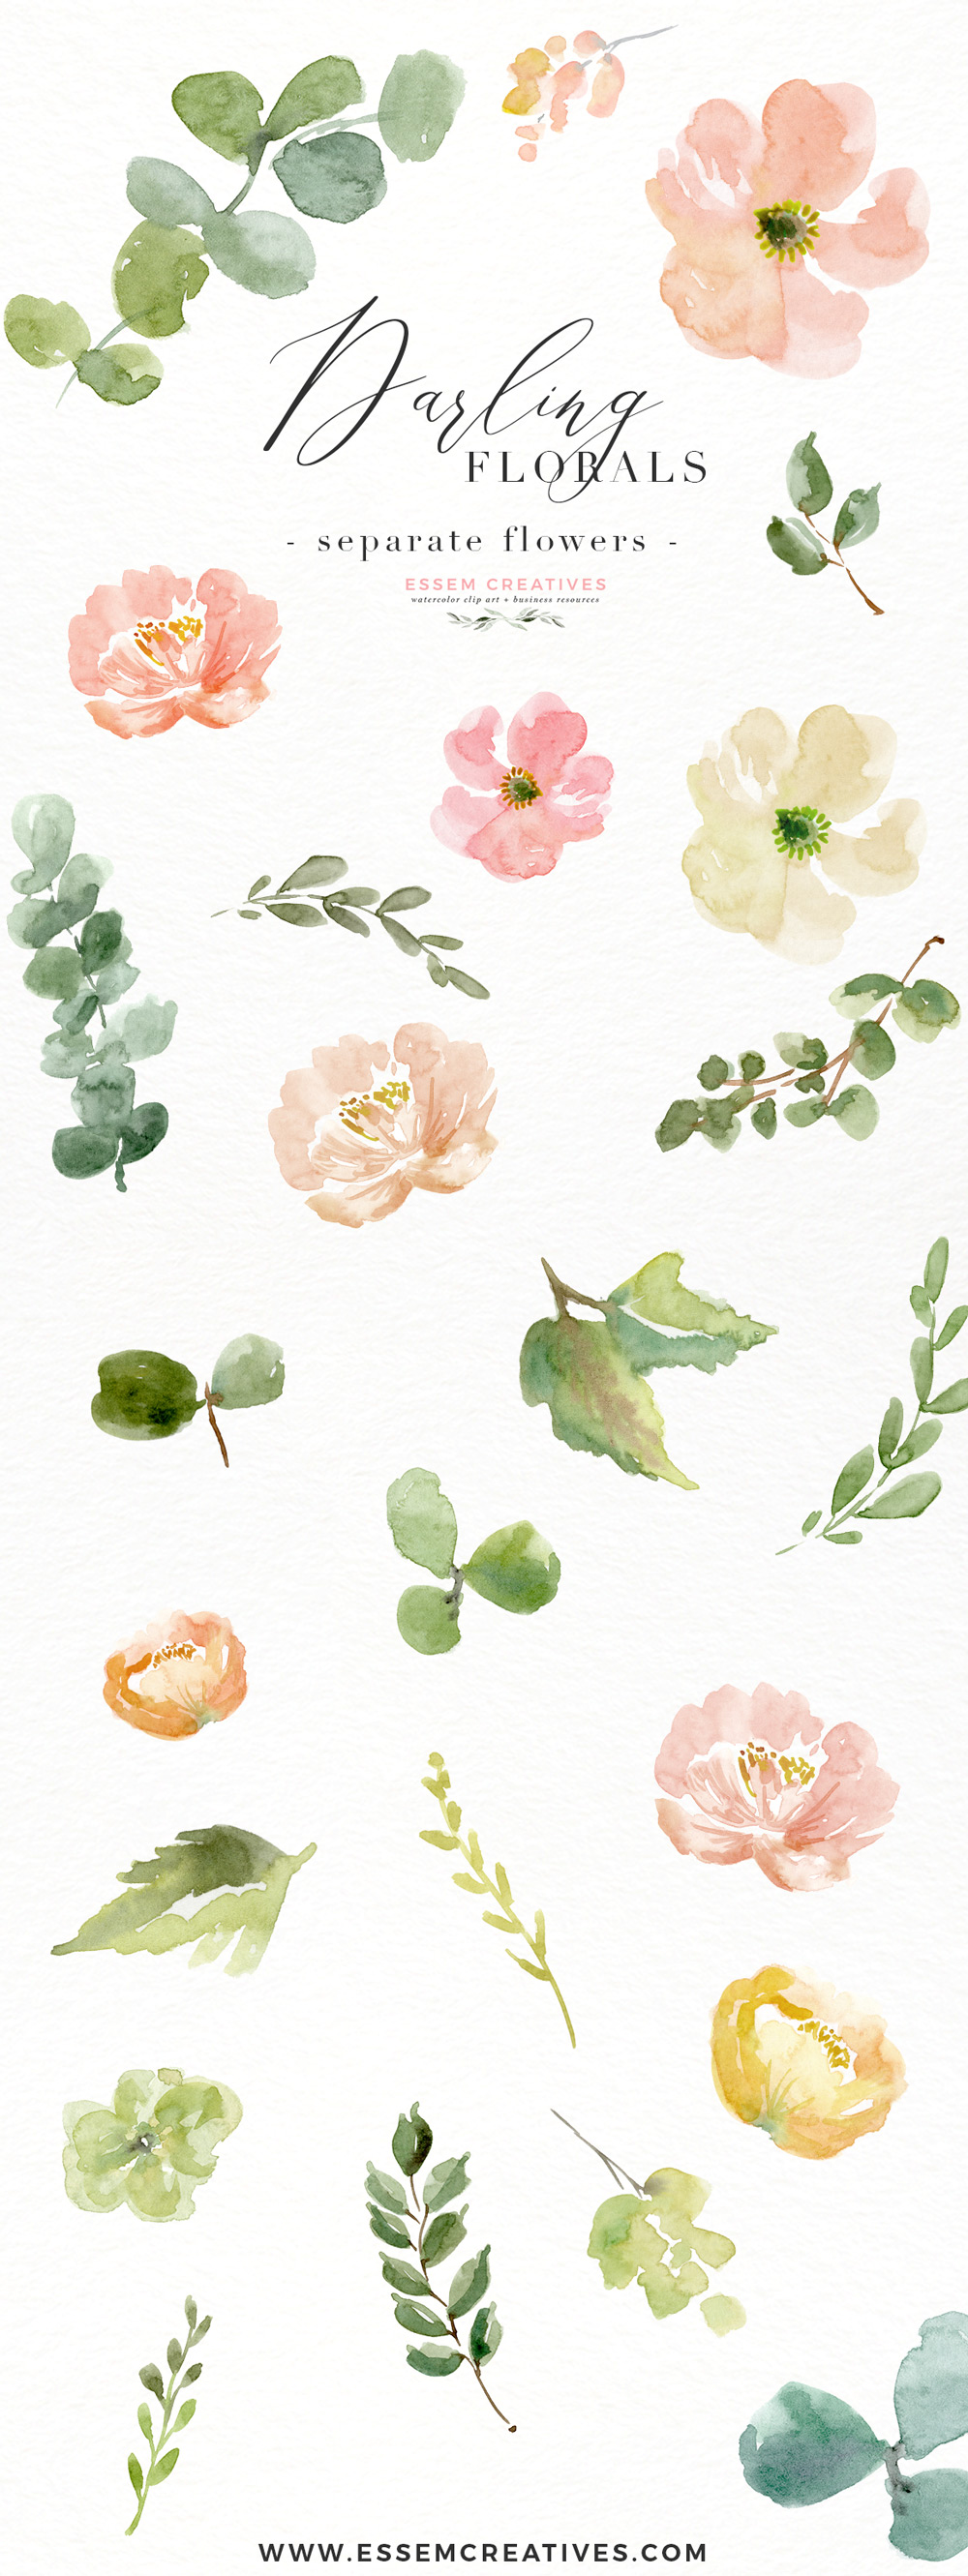 Anemone and rose clipart picture royalty free library Peach Pink Watercolor Flowers PNG Clipart, Peony Clipart, Anemone Clipart,  Floral Clip Art | Essem Creatives picture royalty free library